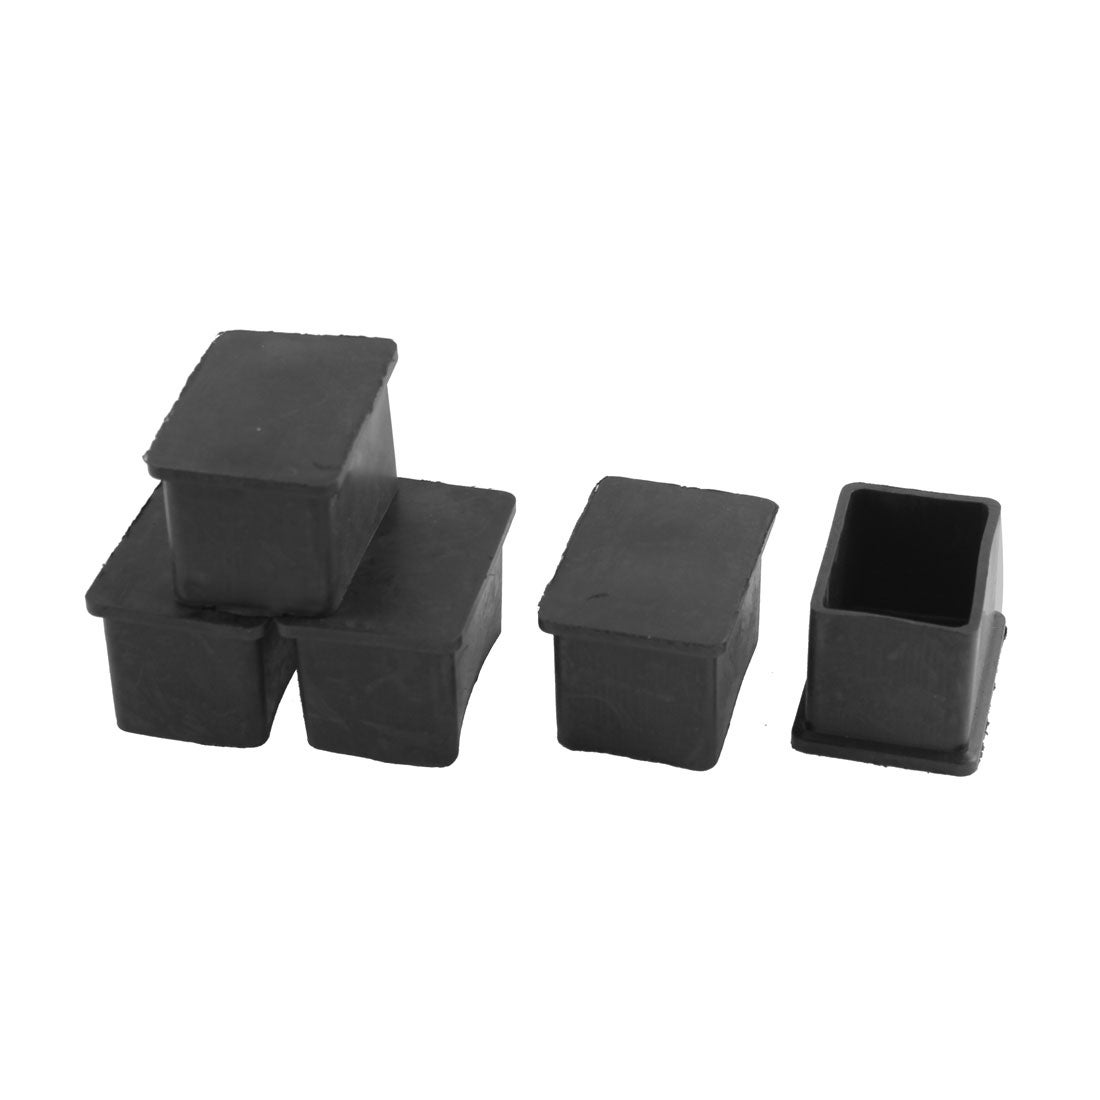 Shop 5 pcs rectangle rubber chair table leg end caps furniture covers 25mm x 38mm free shipping on orders over 45 overstock com 17627070